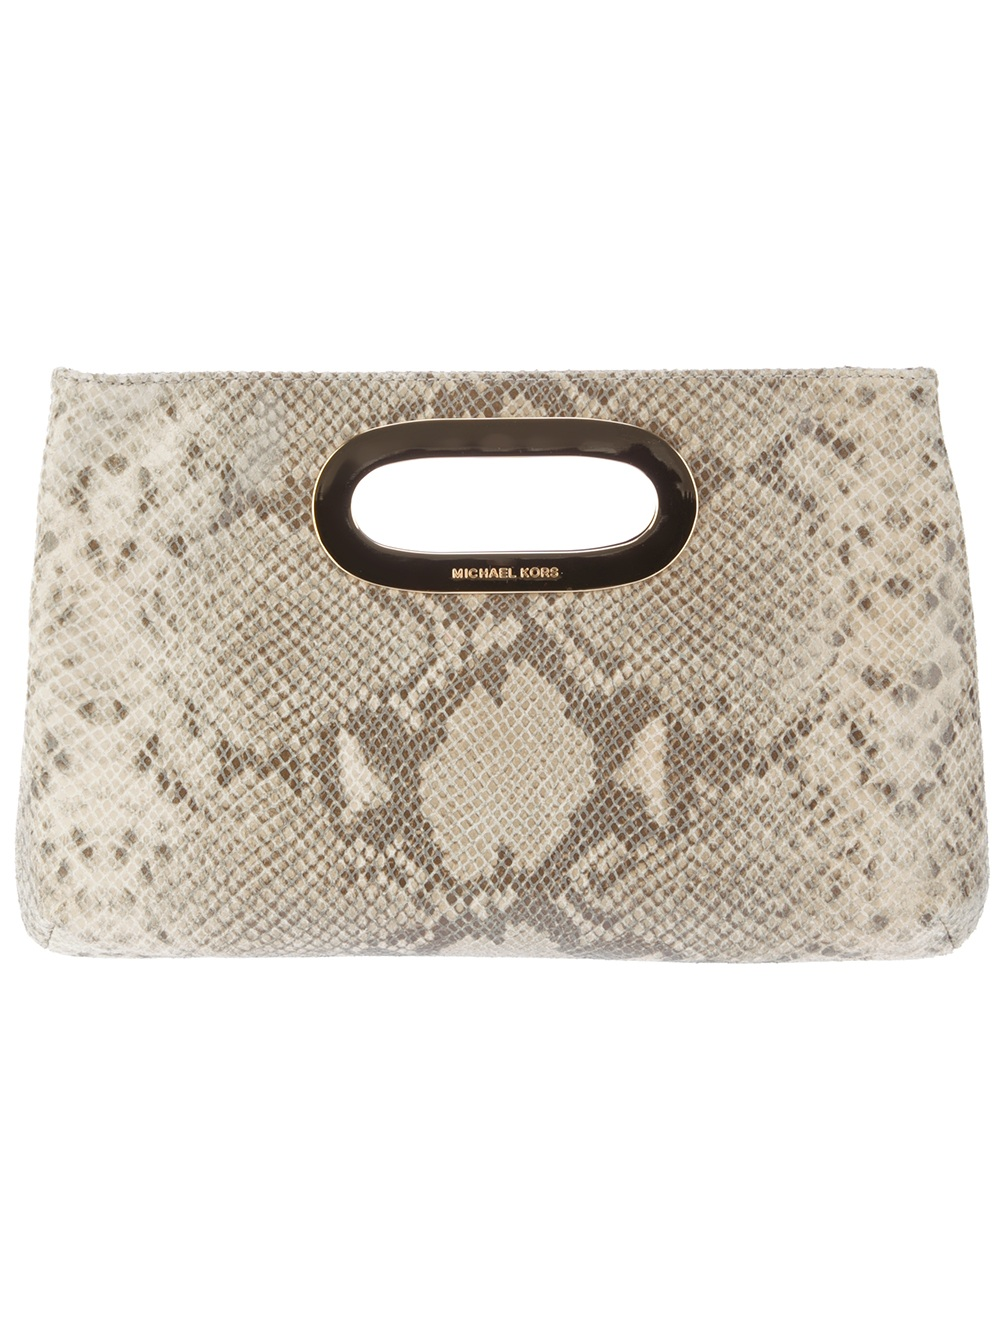 5eb60e5dc76f Lyst - Michael Kors Snakeskin Print Bag in Natural